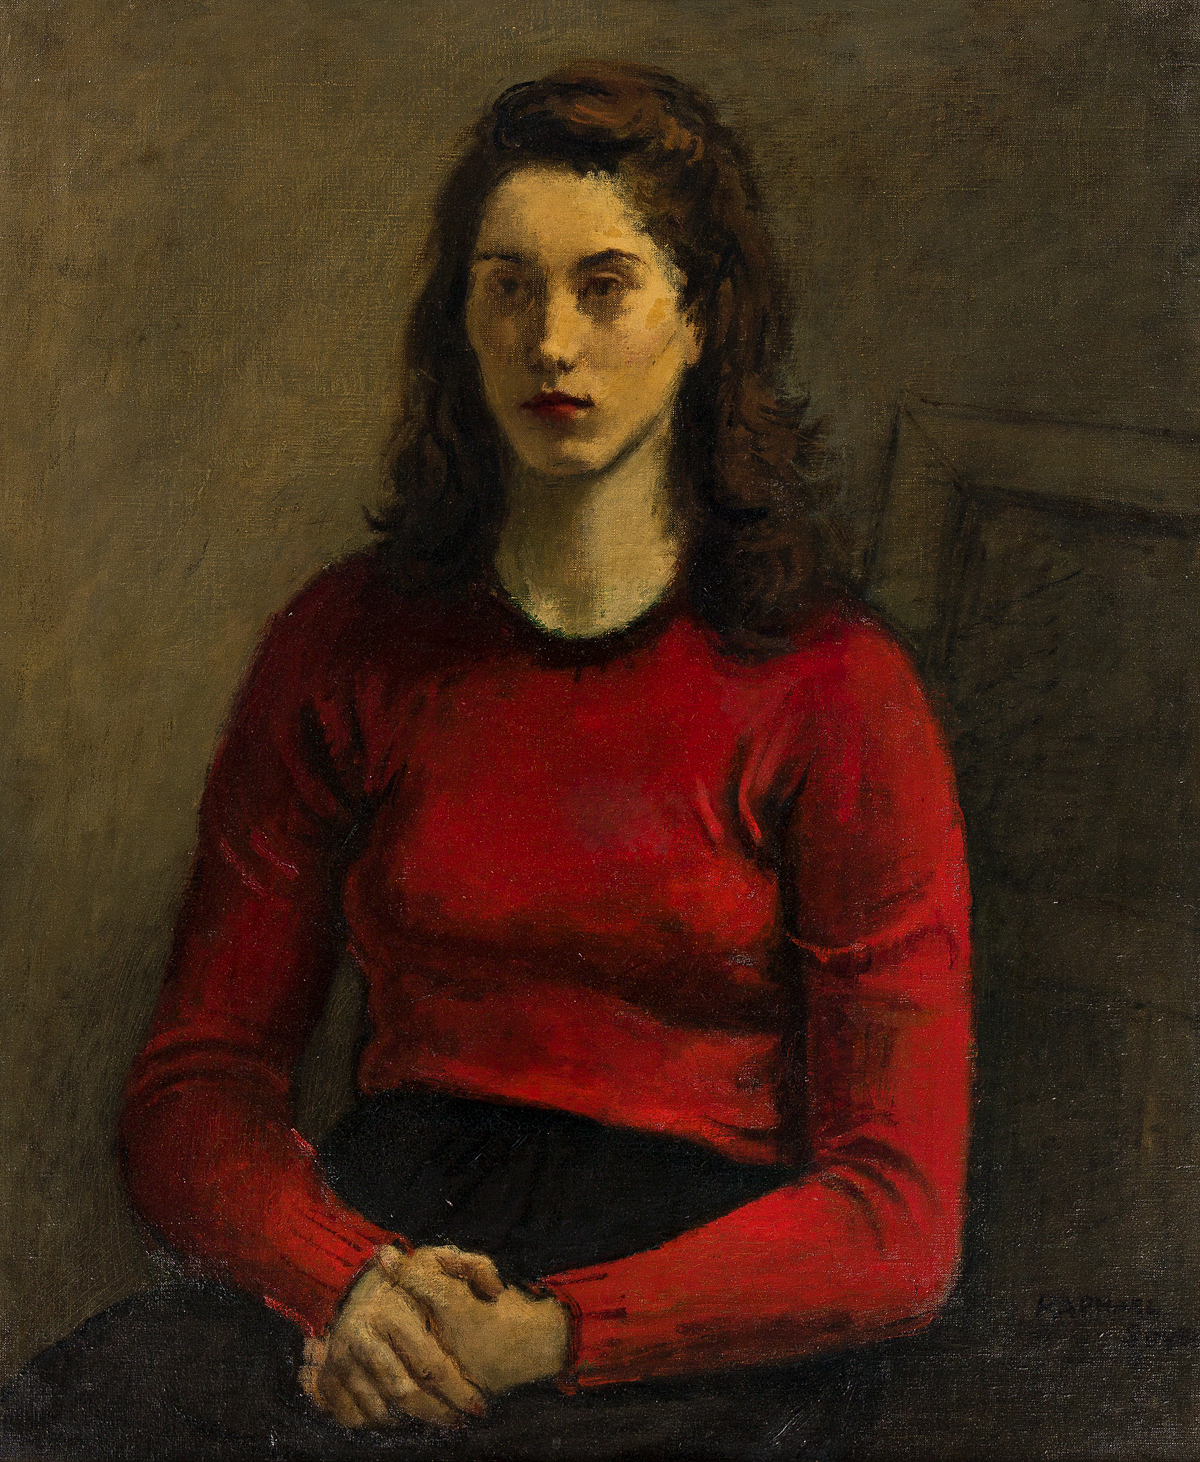 RAPHAEL SOYER Portrait of a Woman in a Red Sweater (Cynthia).